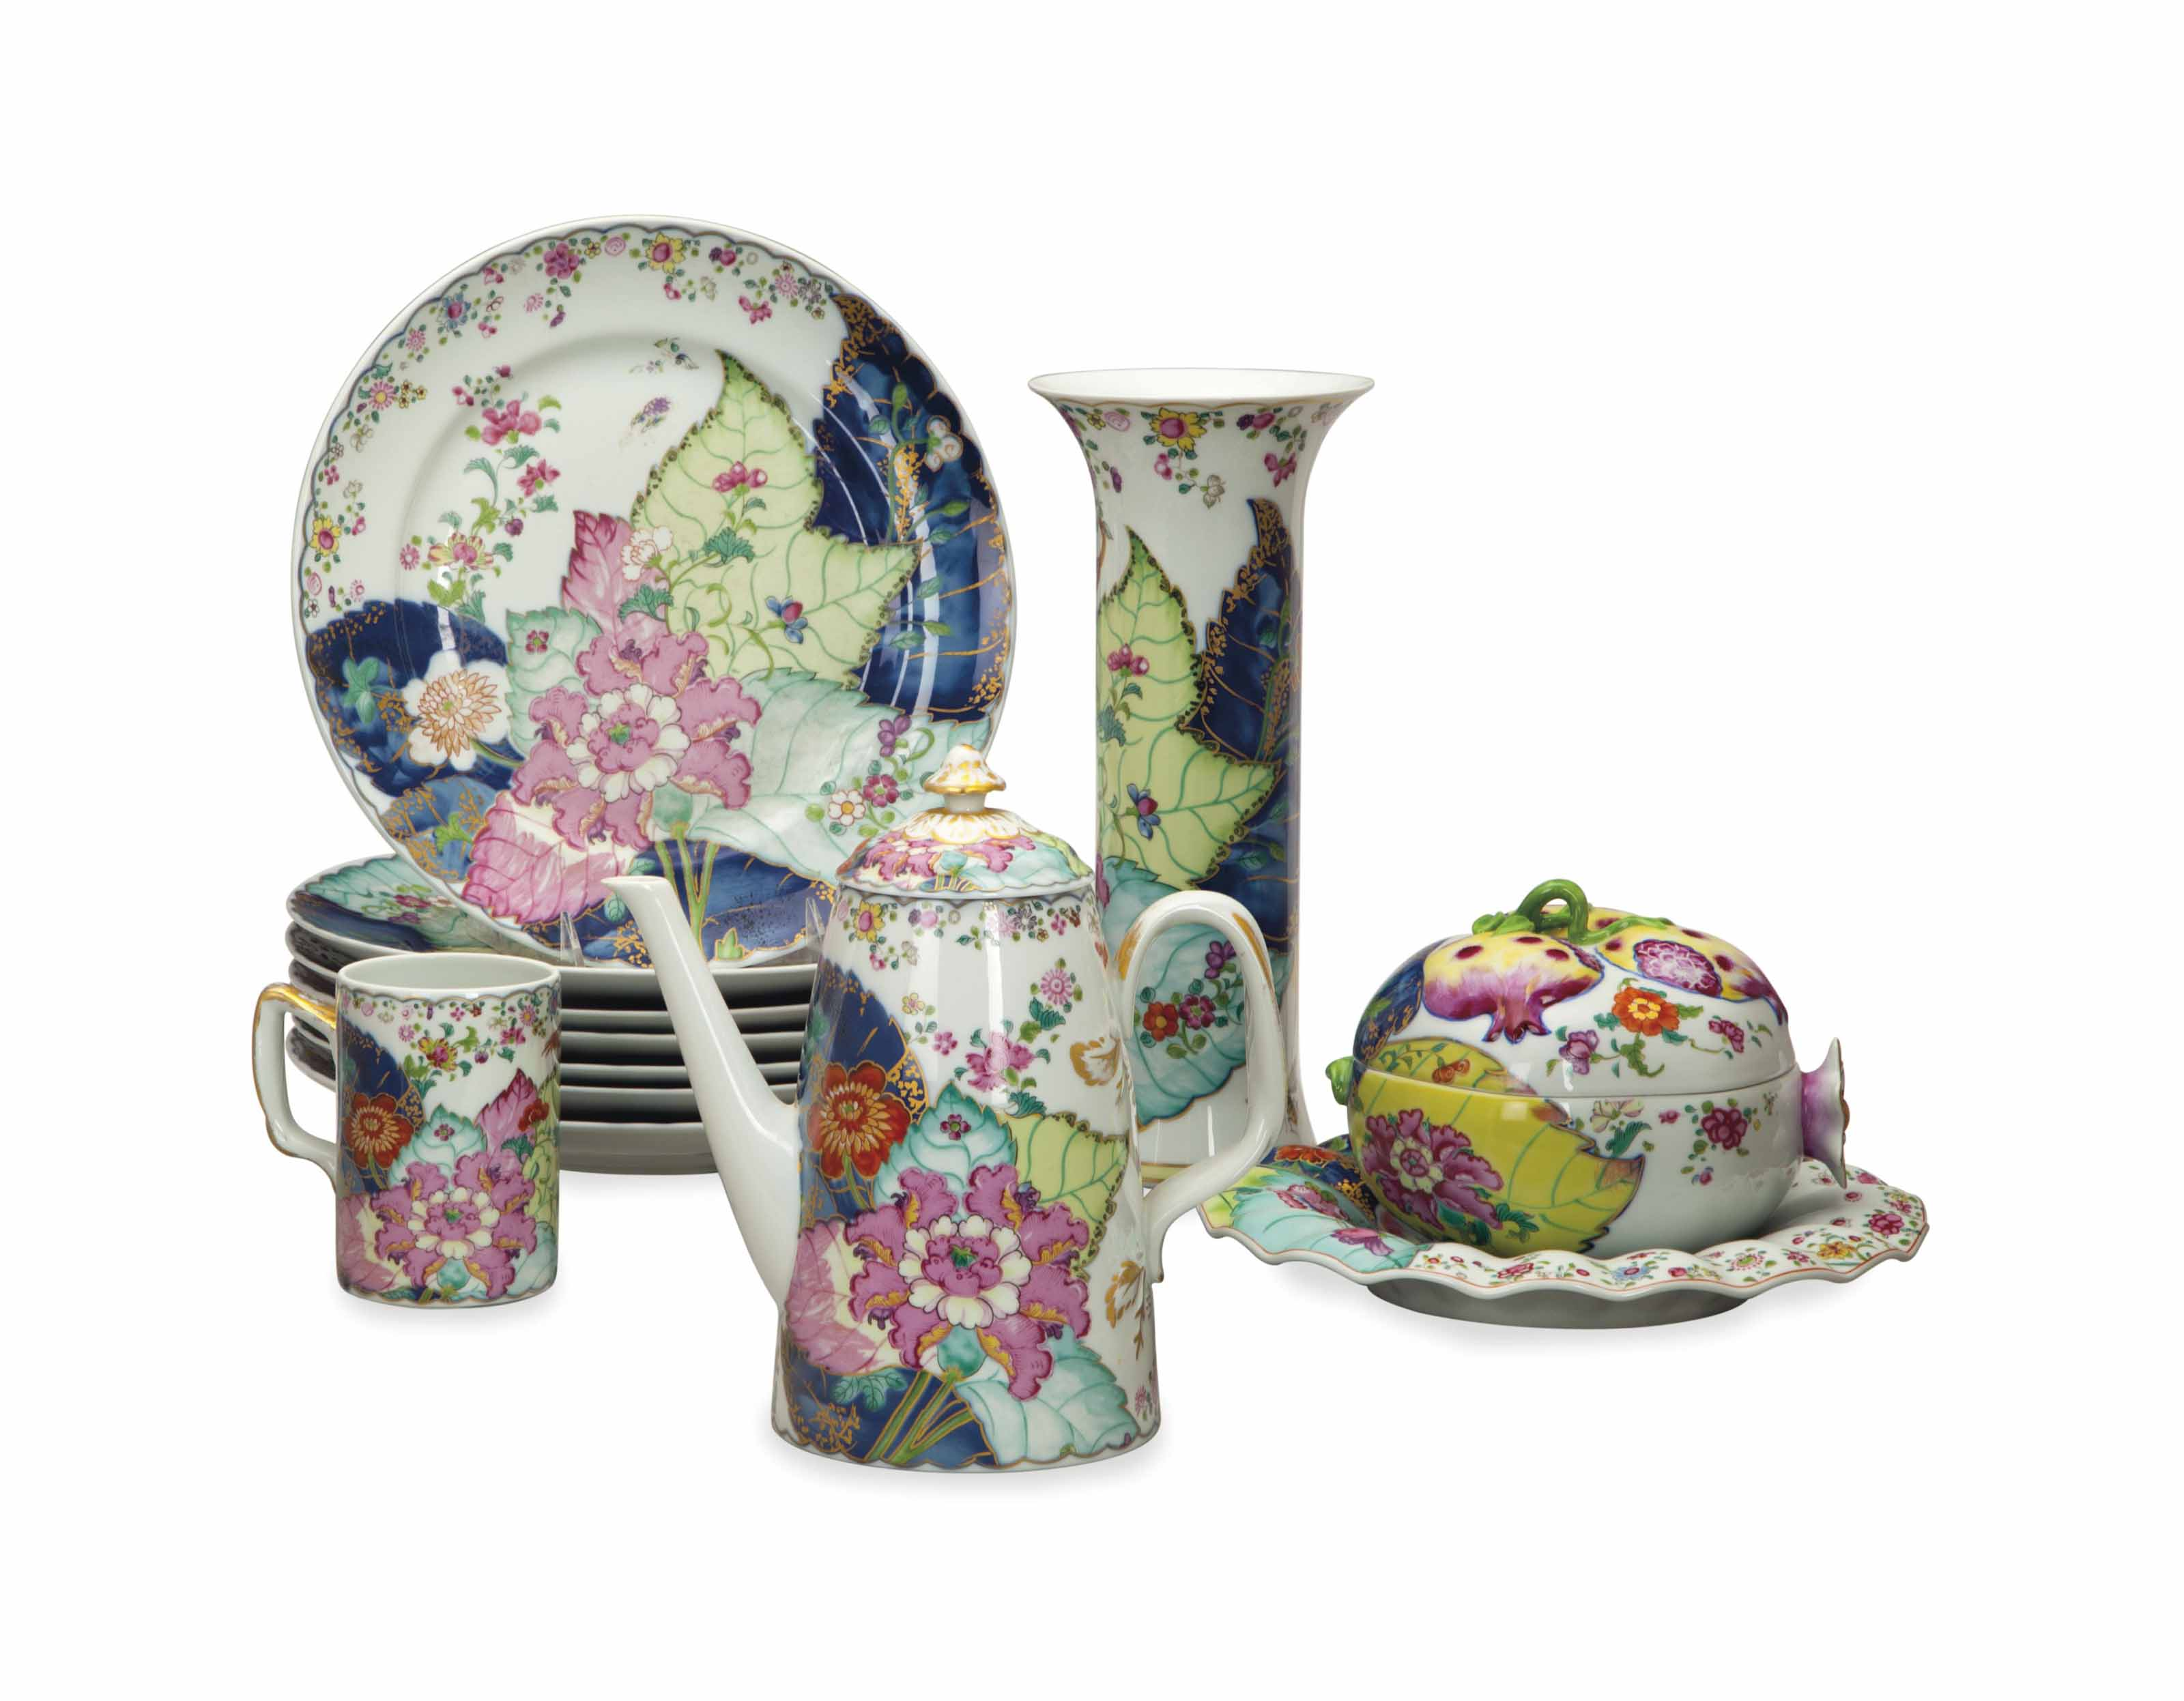 A CHINESE EXPORT-STYLE TABLE SERVICE AND ACCESSORIES,